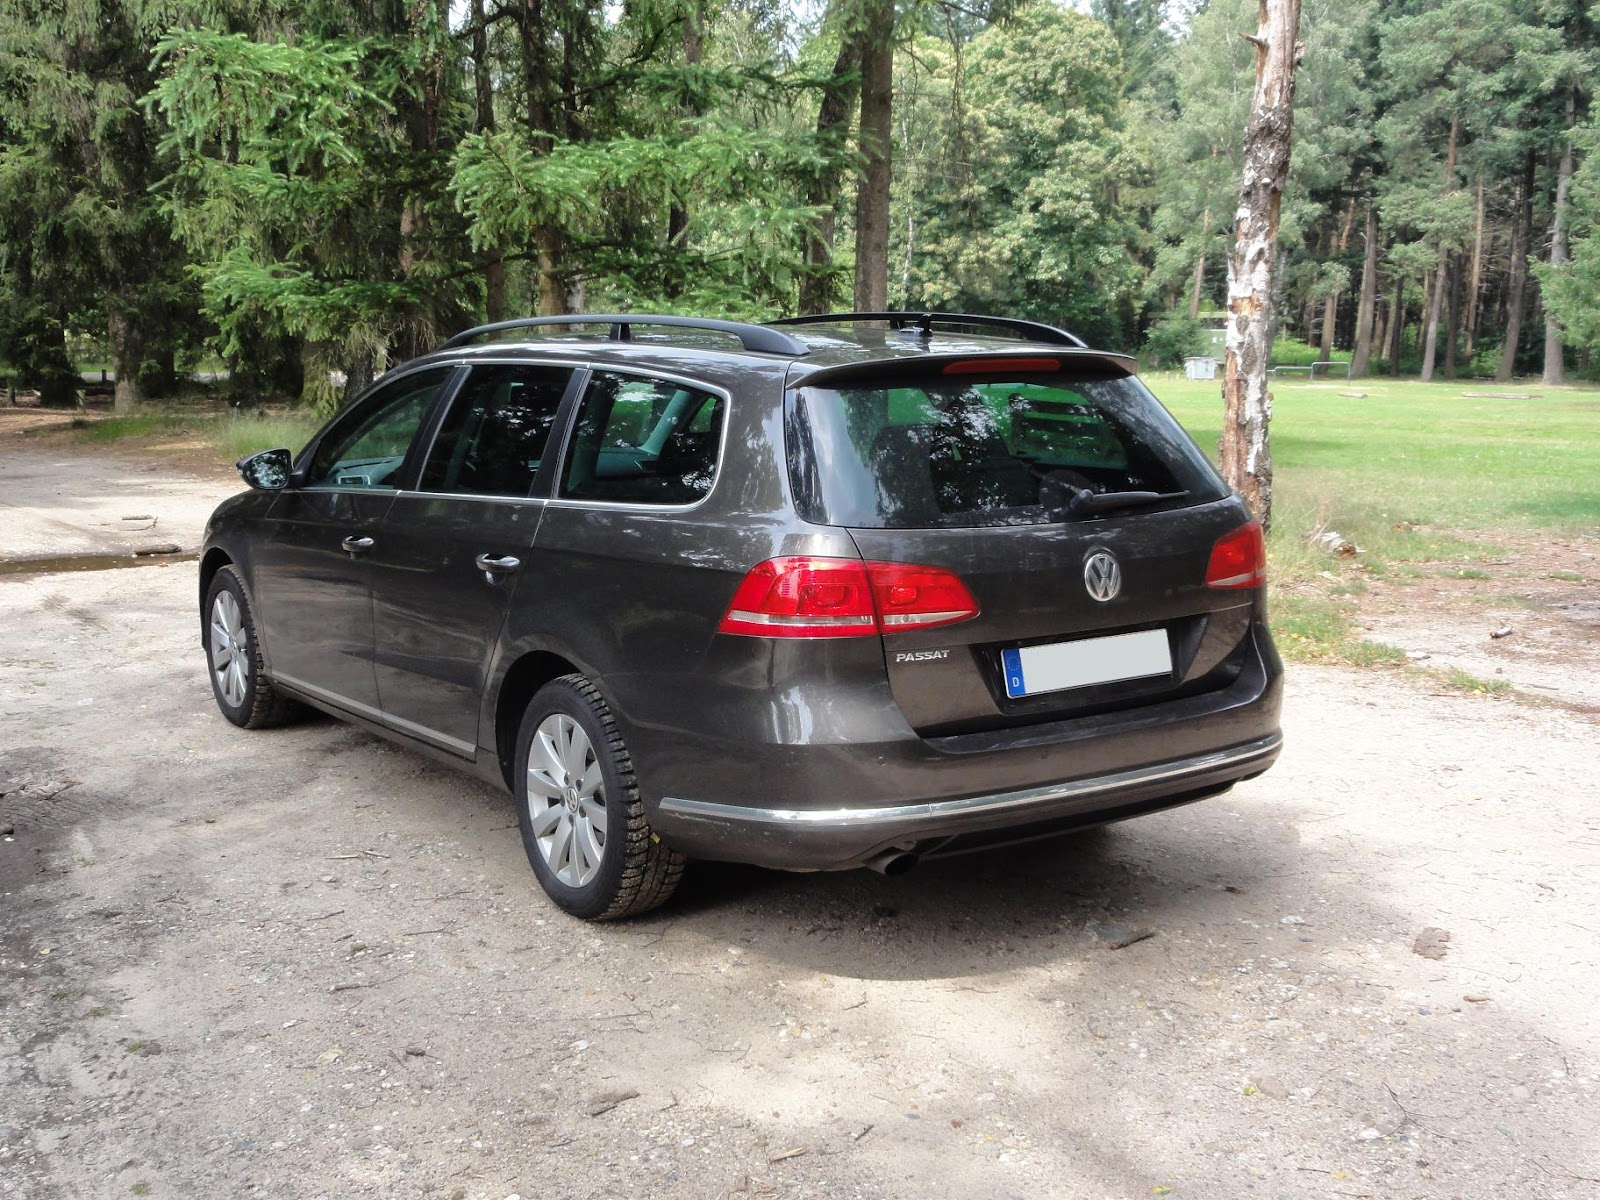 guitigefilmpjes car review volkswagen passat 1 4 tsi. Black Bedroom Furniture Sets. Home Design Ideas